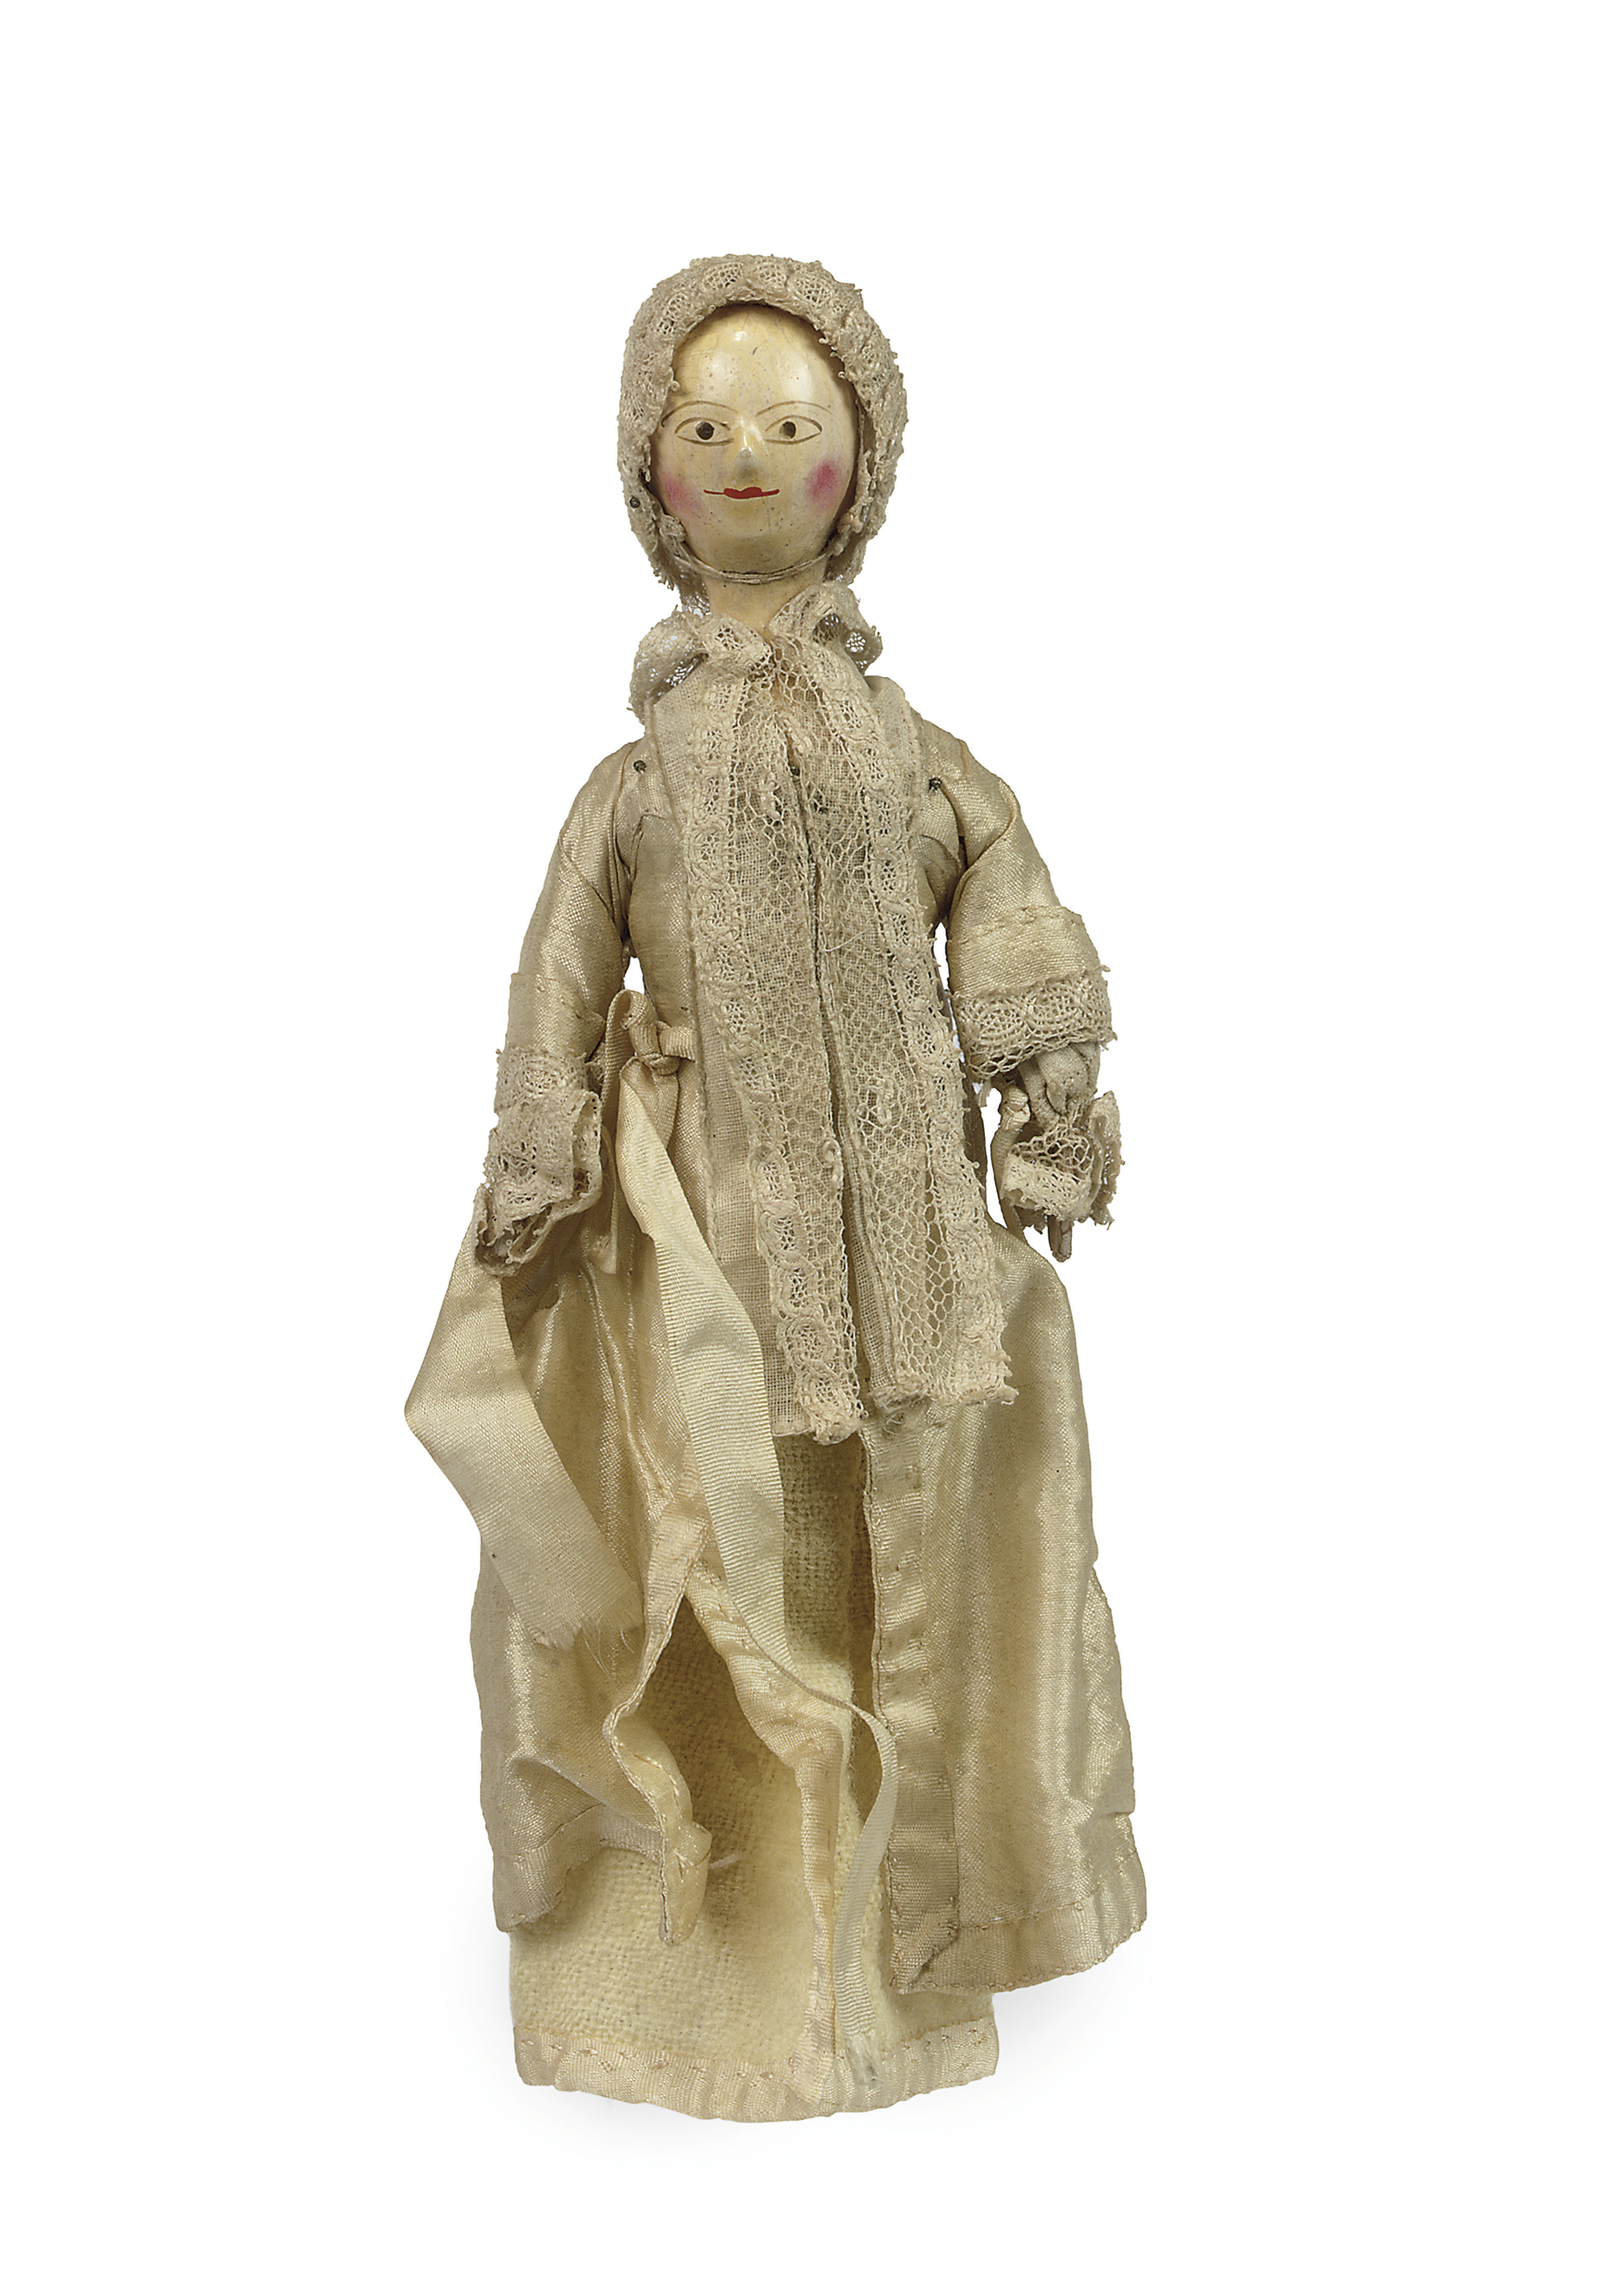 A Very Rare George Ii Turned Wood Baby Doll Mid 18th Century